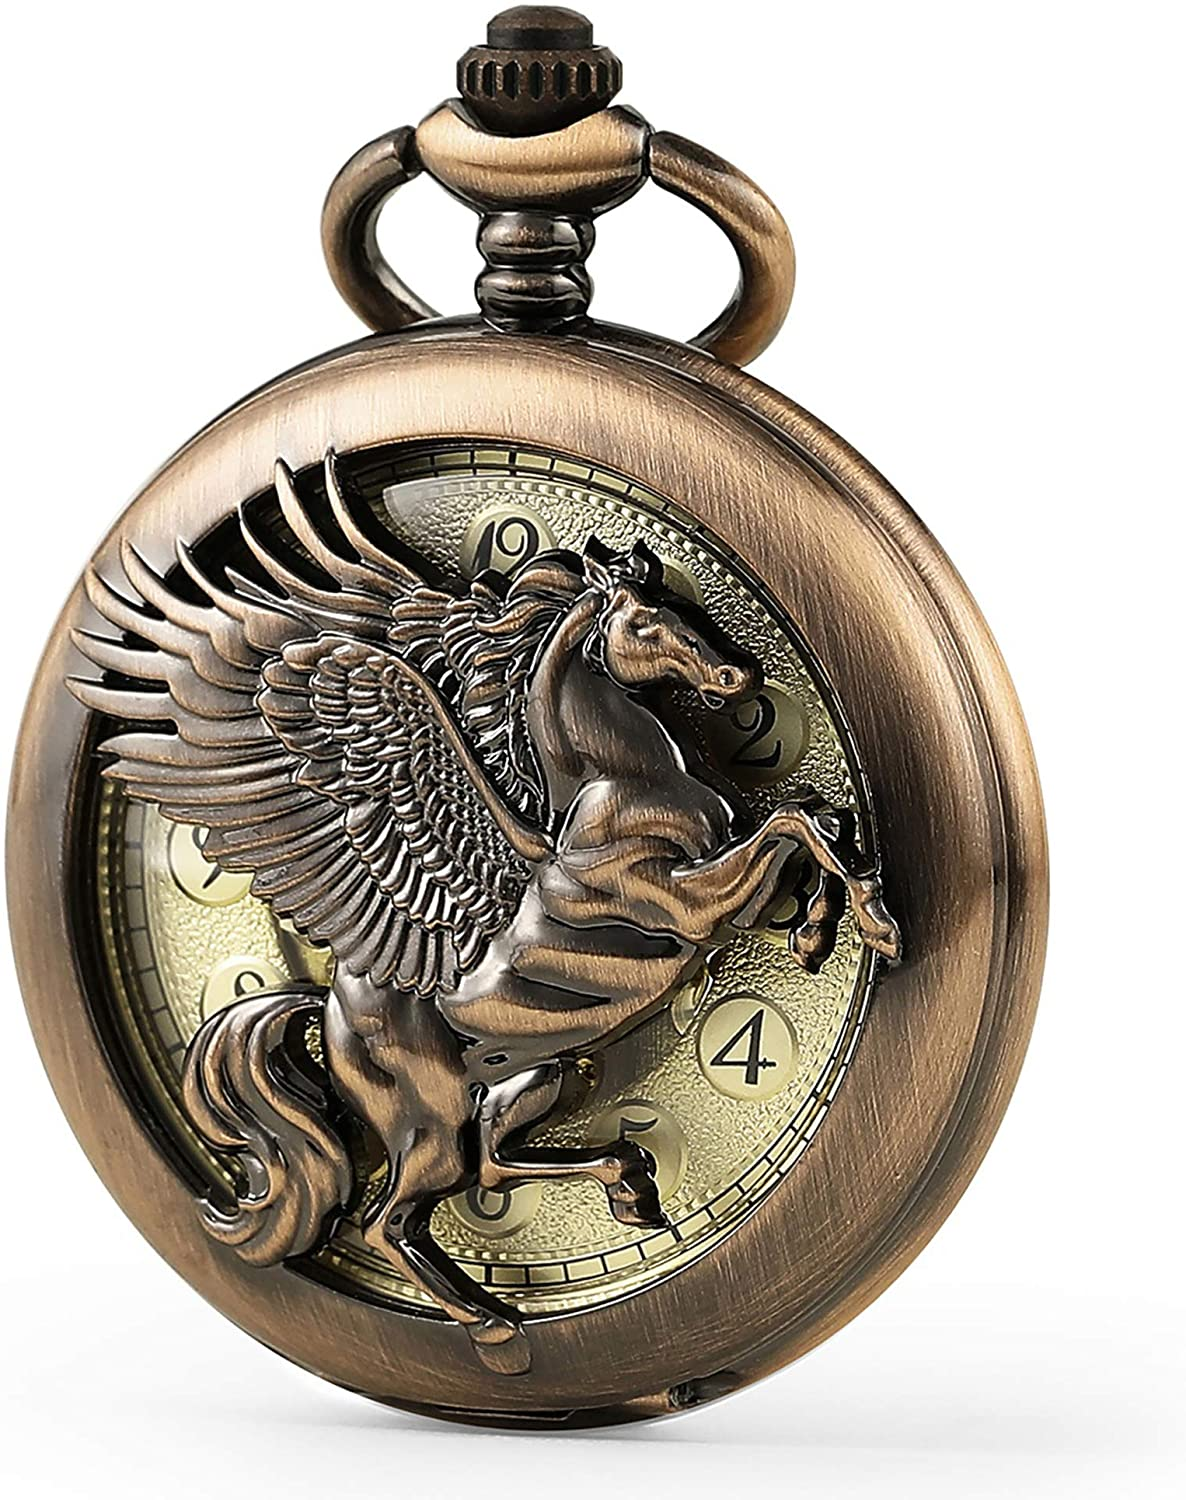 SEWOR Vintage Elegant Flying Horse Pocket Watch with Two Chains Leather & Metal